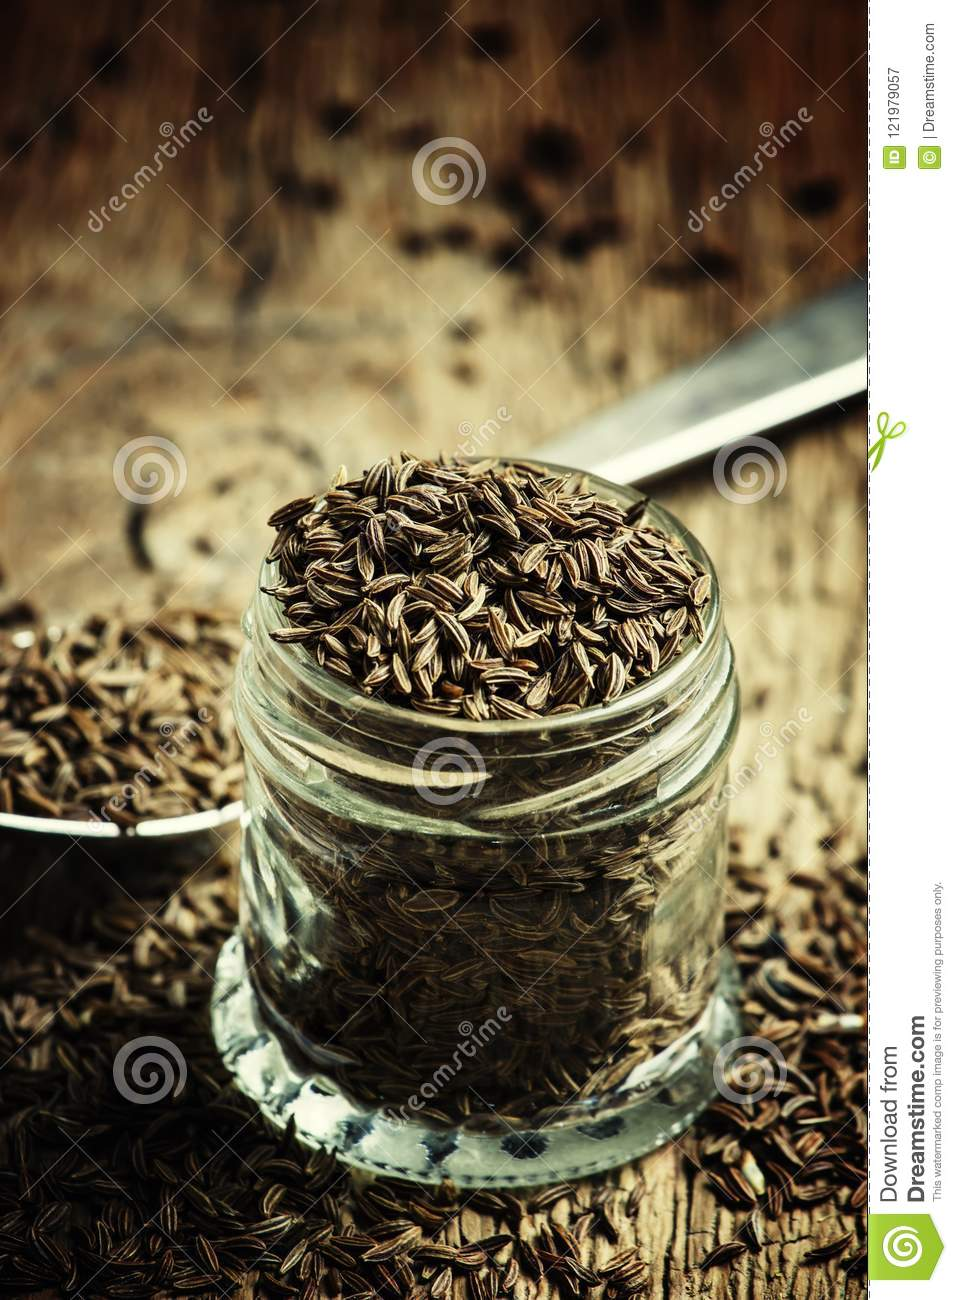 Caraway Seeds In A Glass Jar And A Silver Spoon, Vintage